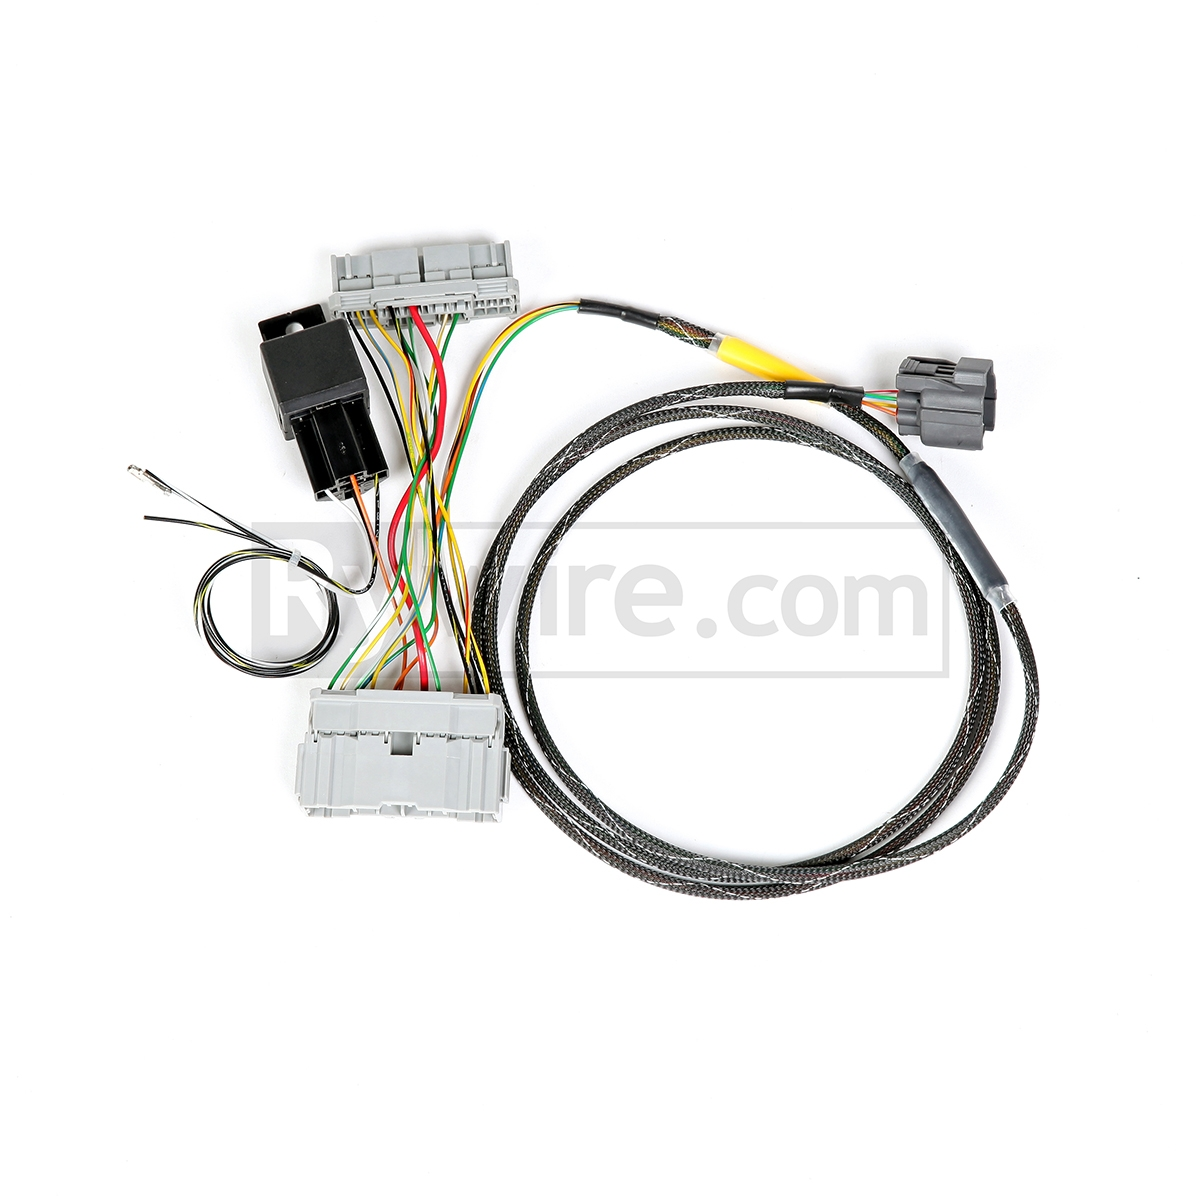 medium resolution of 01 05 civic k series conversion harness subaru wiring harness conversion rywire motorsport electronics